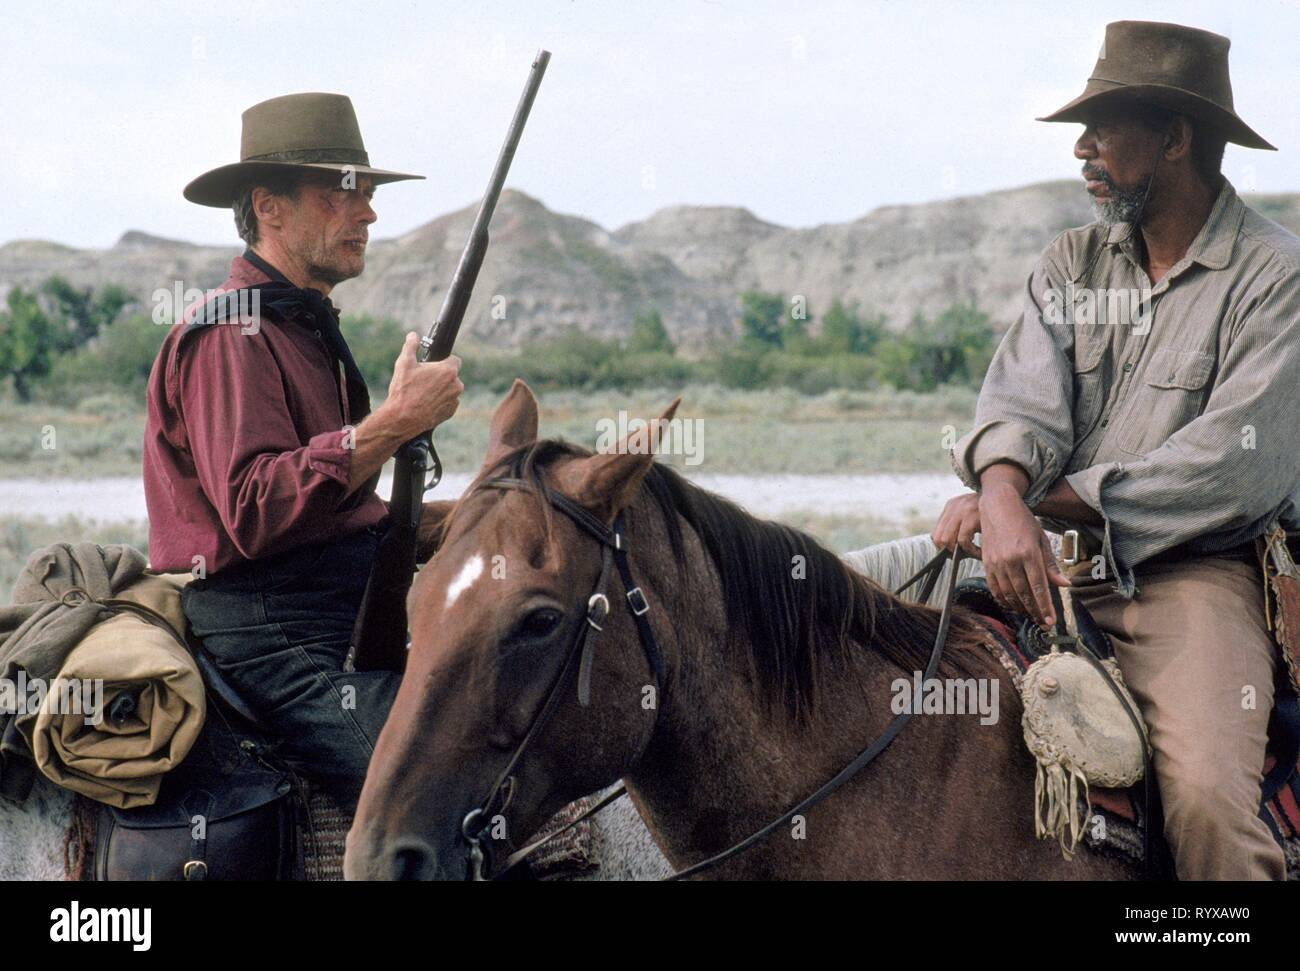 CLINT EASTWOOD, MORGAN FREEMAN, UNFORGIVEN, 1992 Stock Photo